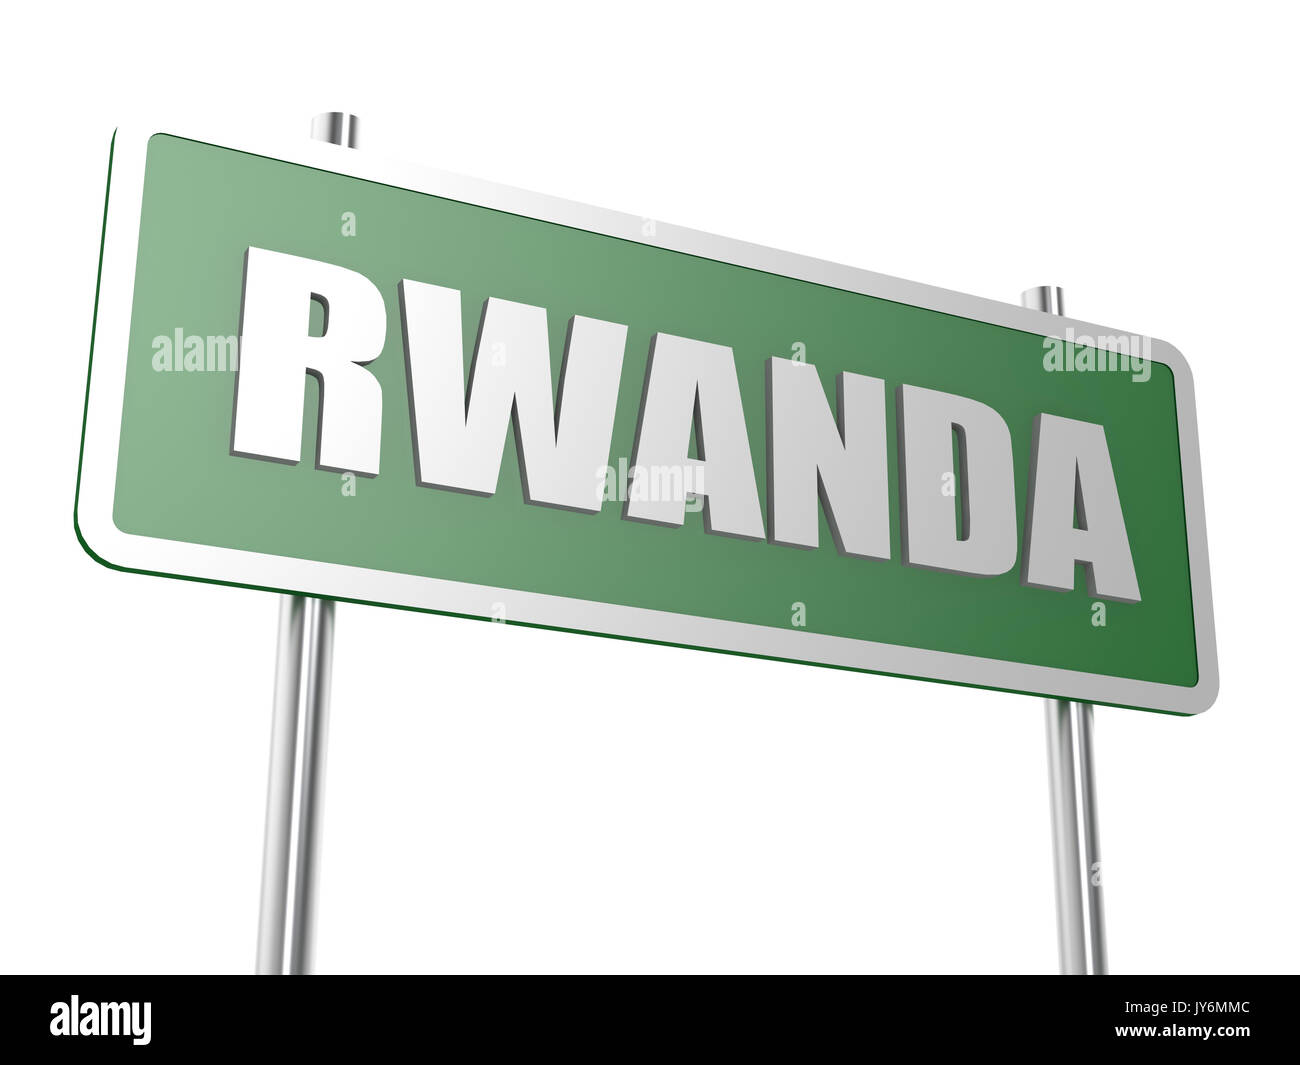 Rwanda image with hi-res rendered artwork that could be used for any graphic design. - Stock Image